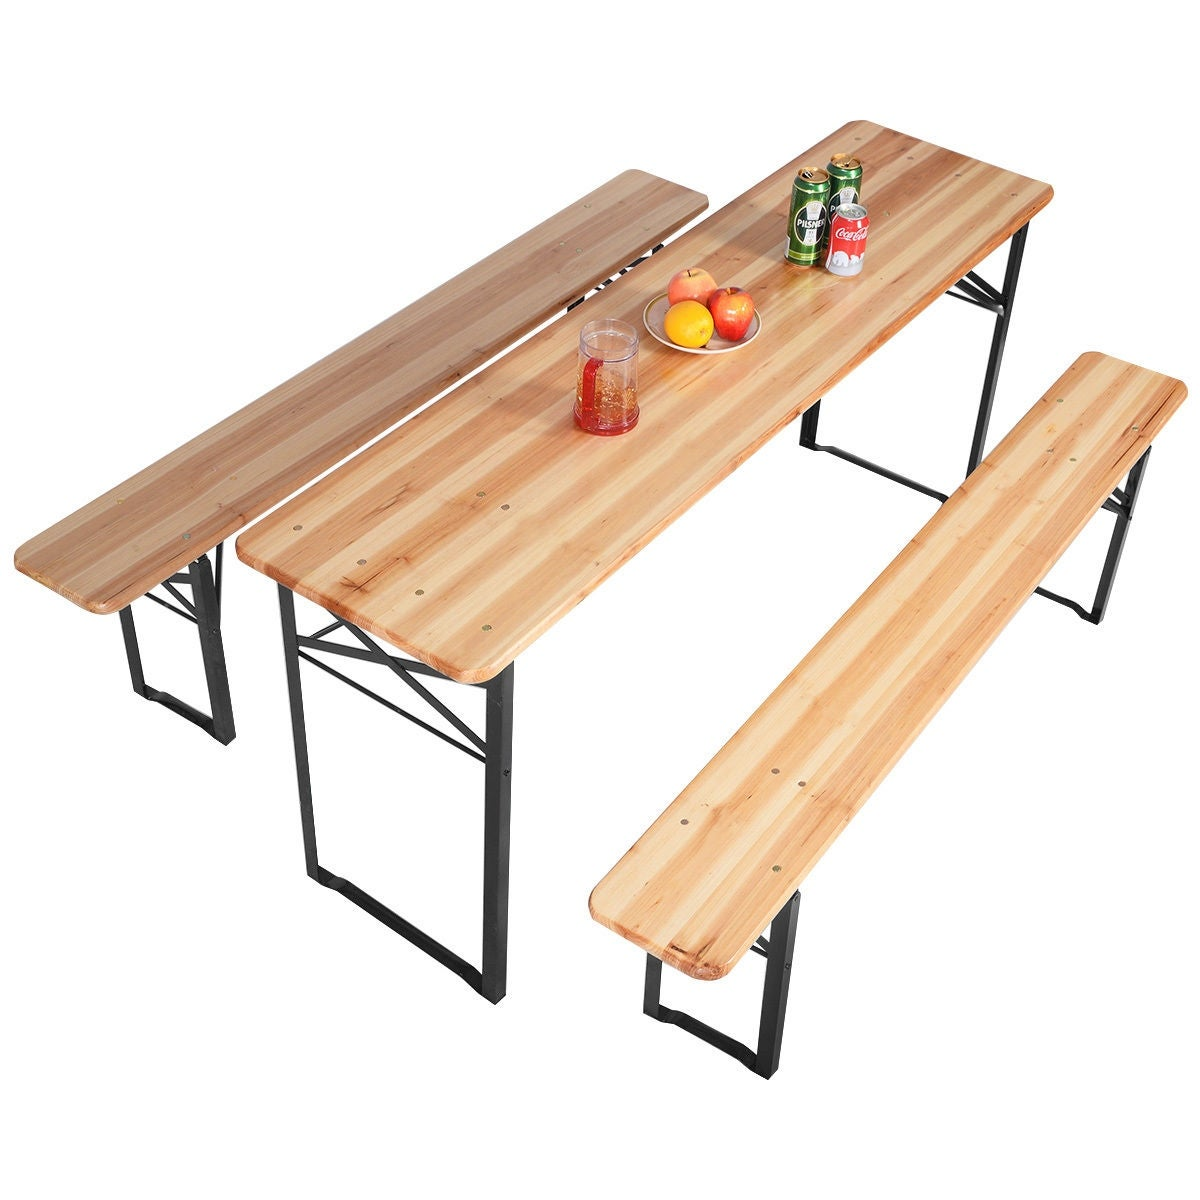 Costway 3 Pcs Beer Table Bench Set Folding Wooden Top Picnic Patio Garden On Free Shipping Today 15880944